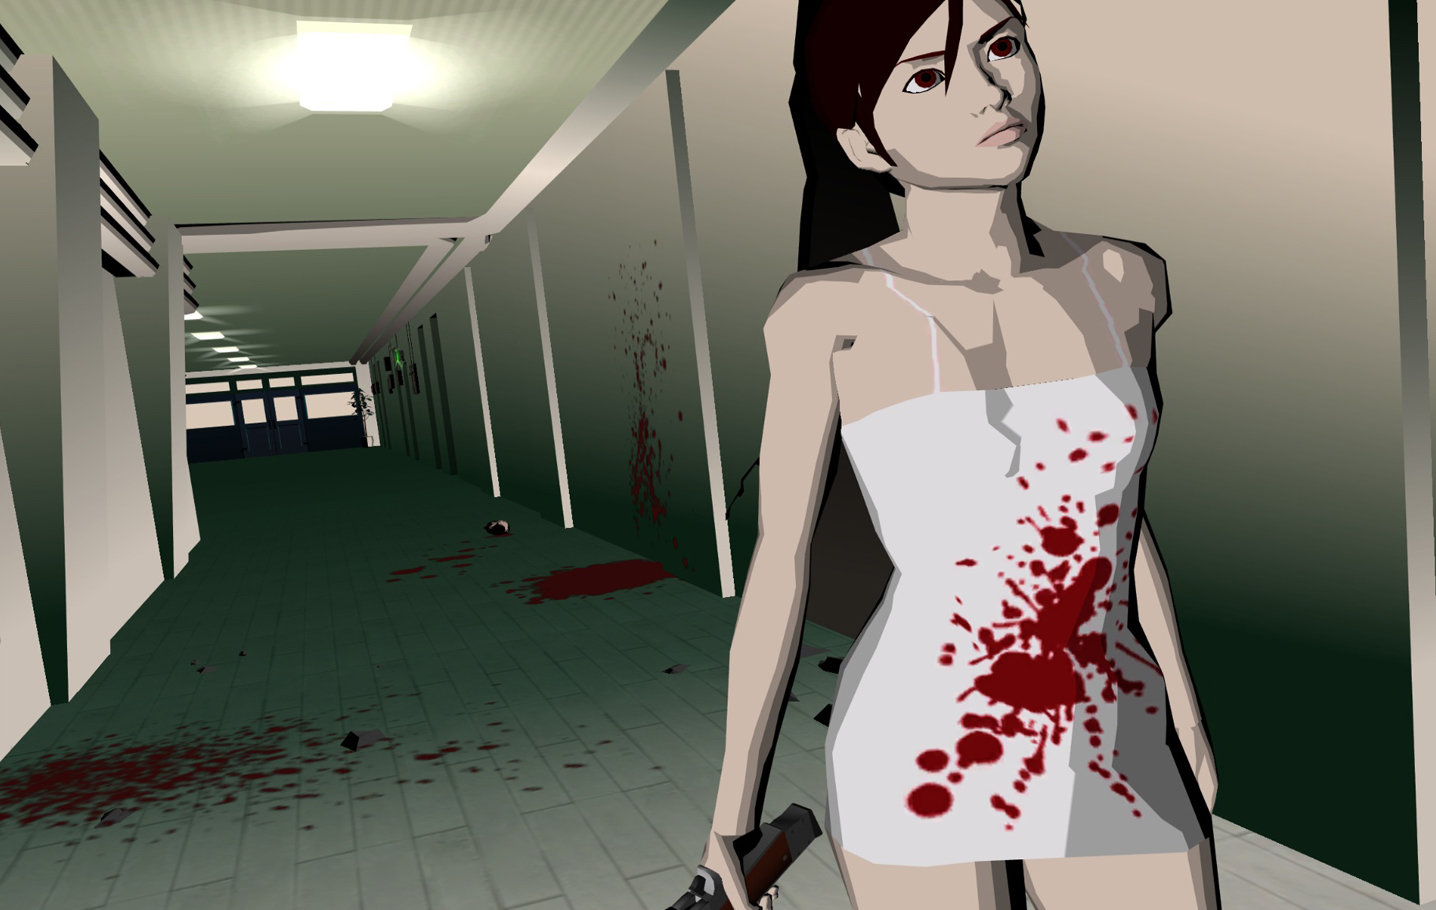 Killer7 won't stay dead because of Let It Die screenshot